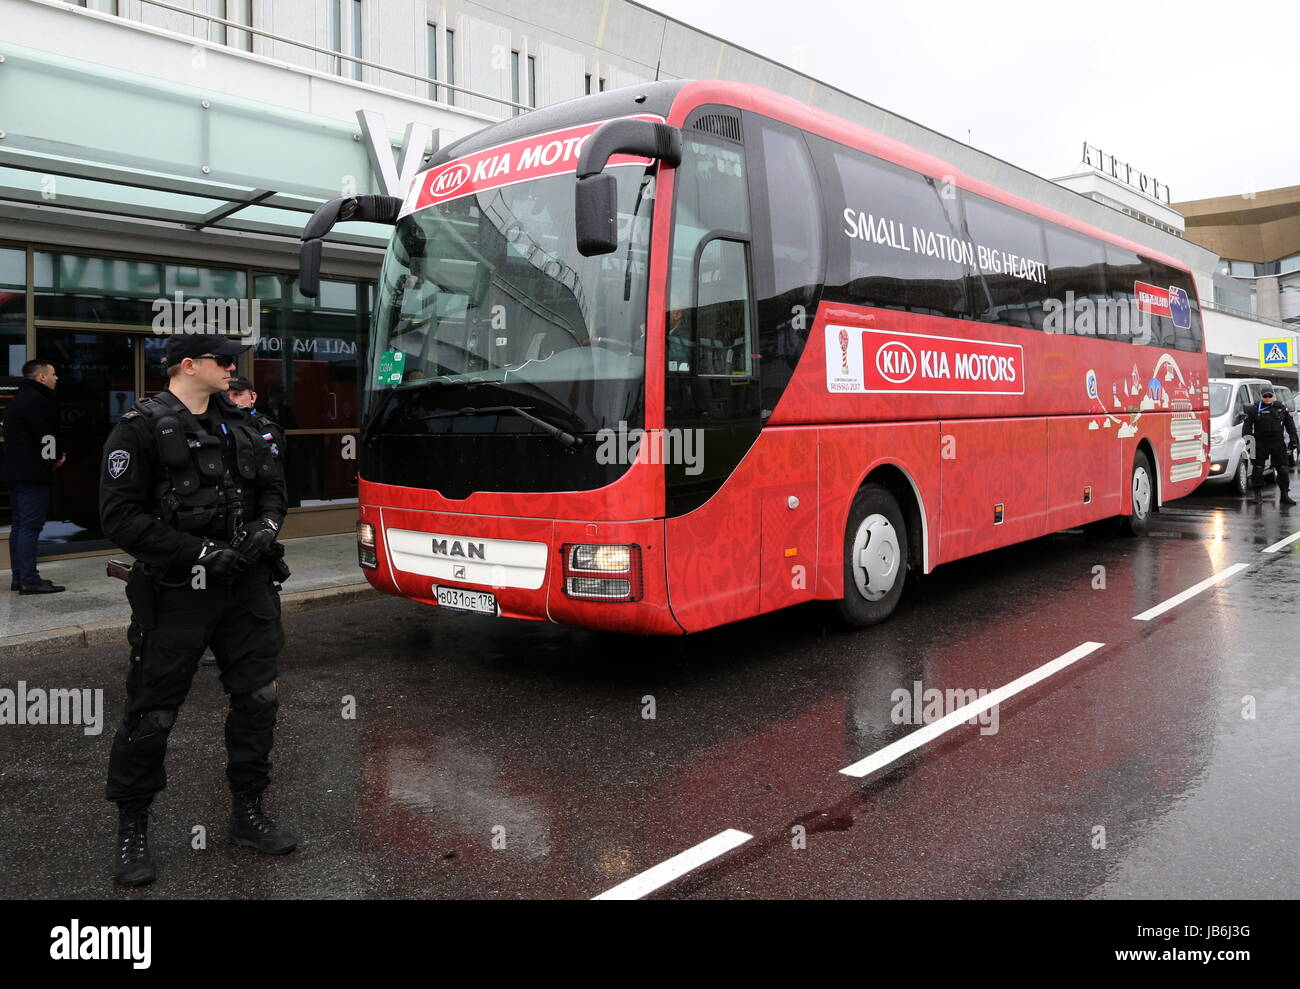 d94ecb99f St Petersburg, Russia. 9th June, 2017. A bus for the New Zealand national  football team who arrives at Pulkovo International Airport for the 2017 ...